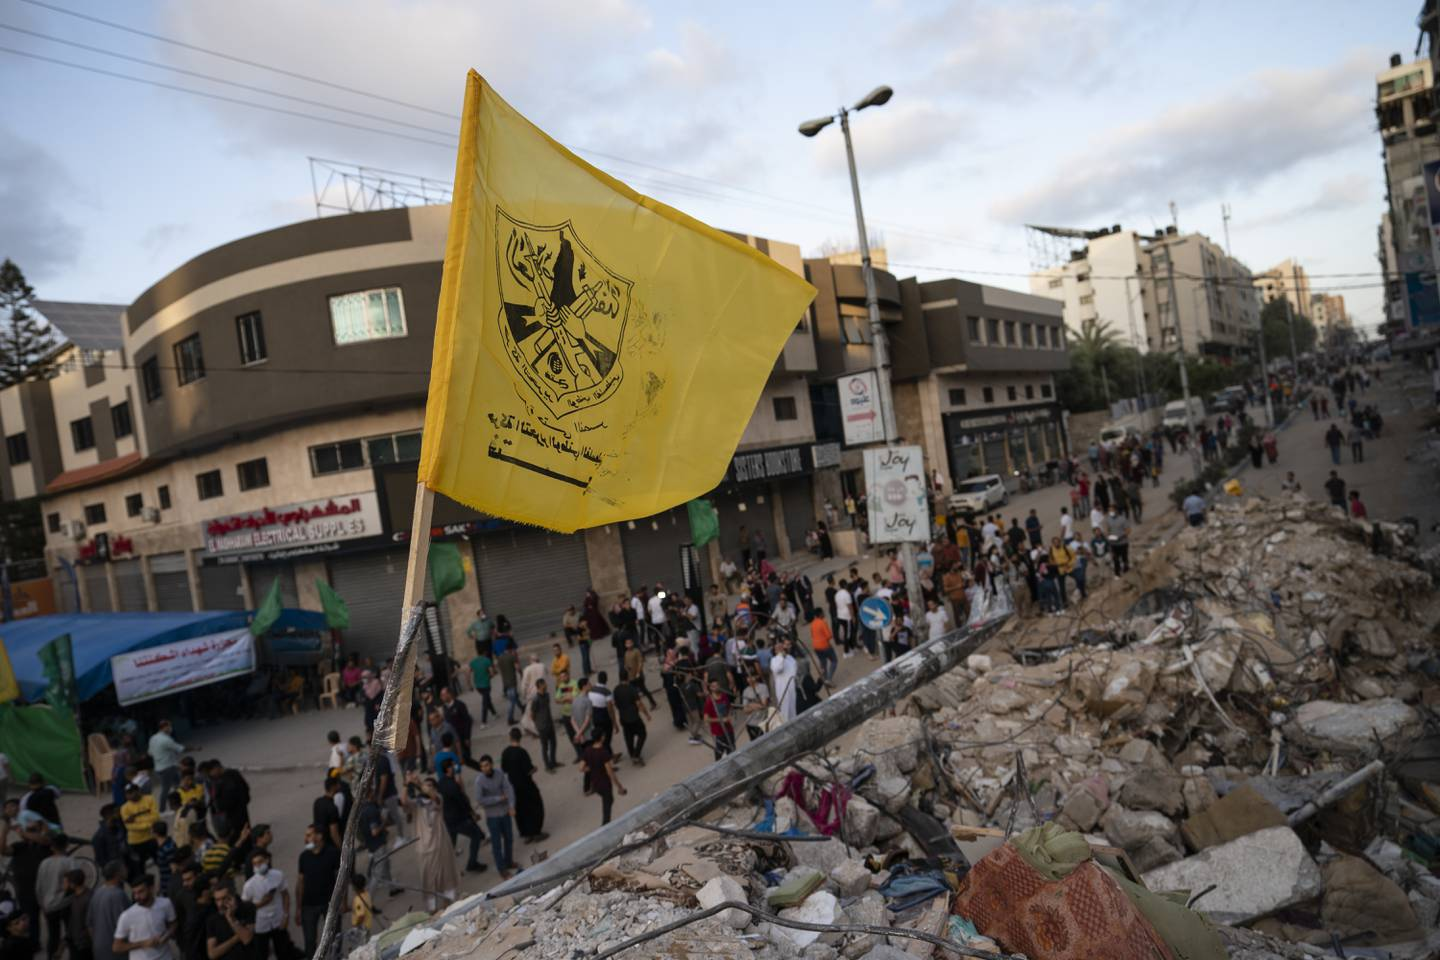 A Fatah flag is placed on top of a rubble heap beside a building previously destroyed by an air-strike following a cease-fire reached after an 11-day war between Gaza's Hamas rulers and Israel, in Gaza City, Friday, May 21, 2021. (AP Photo/John Minchillo)